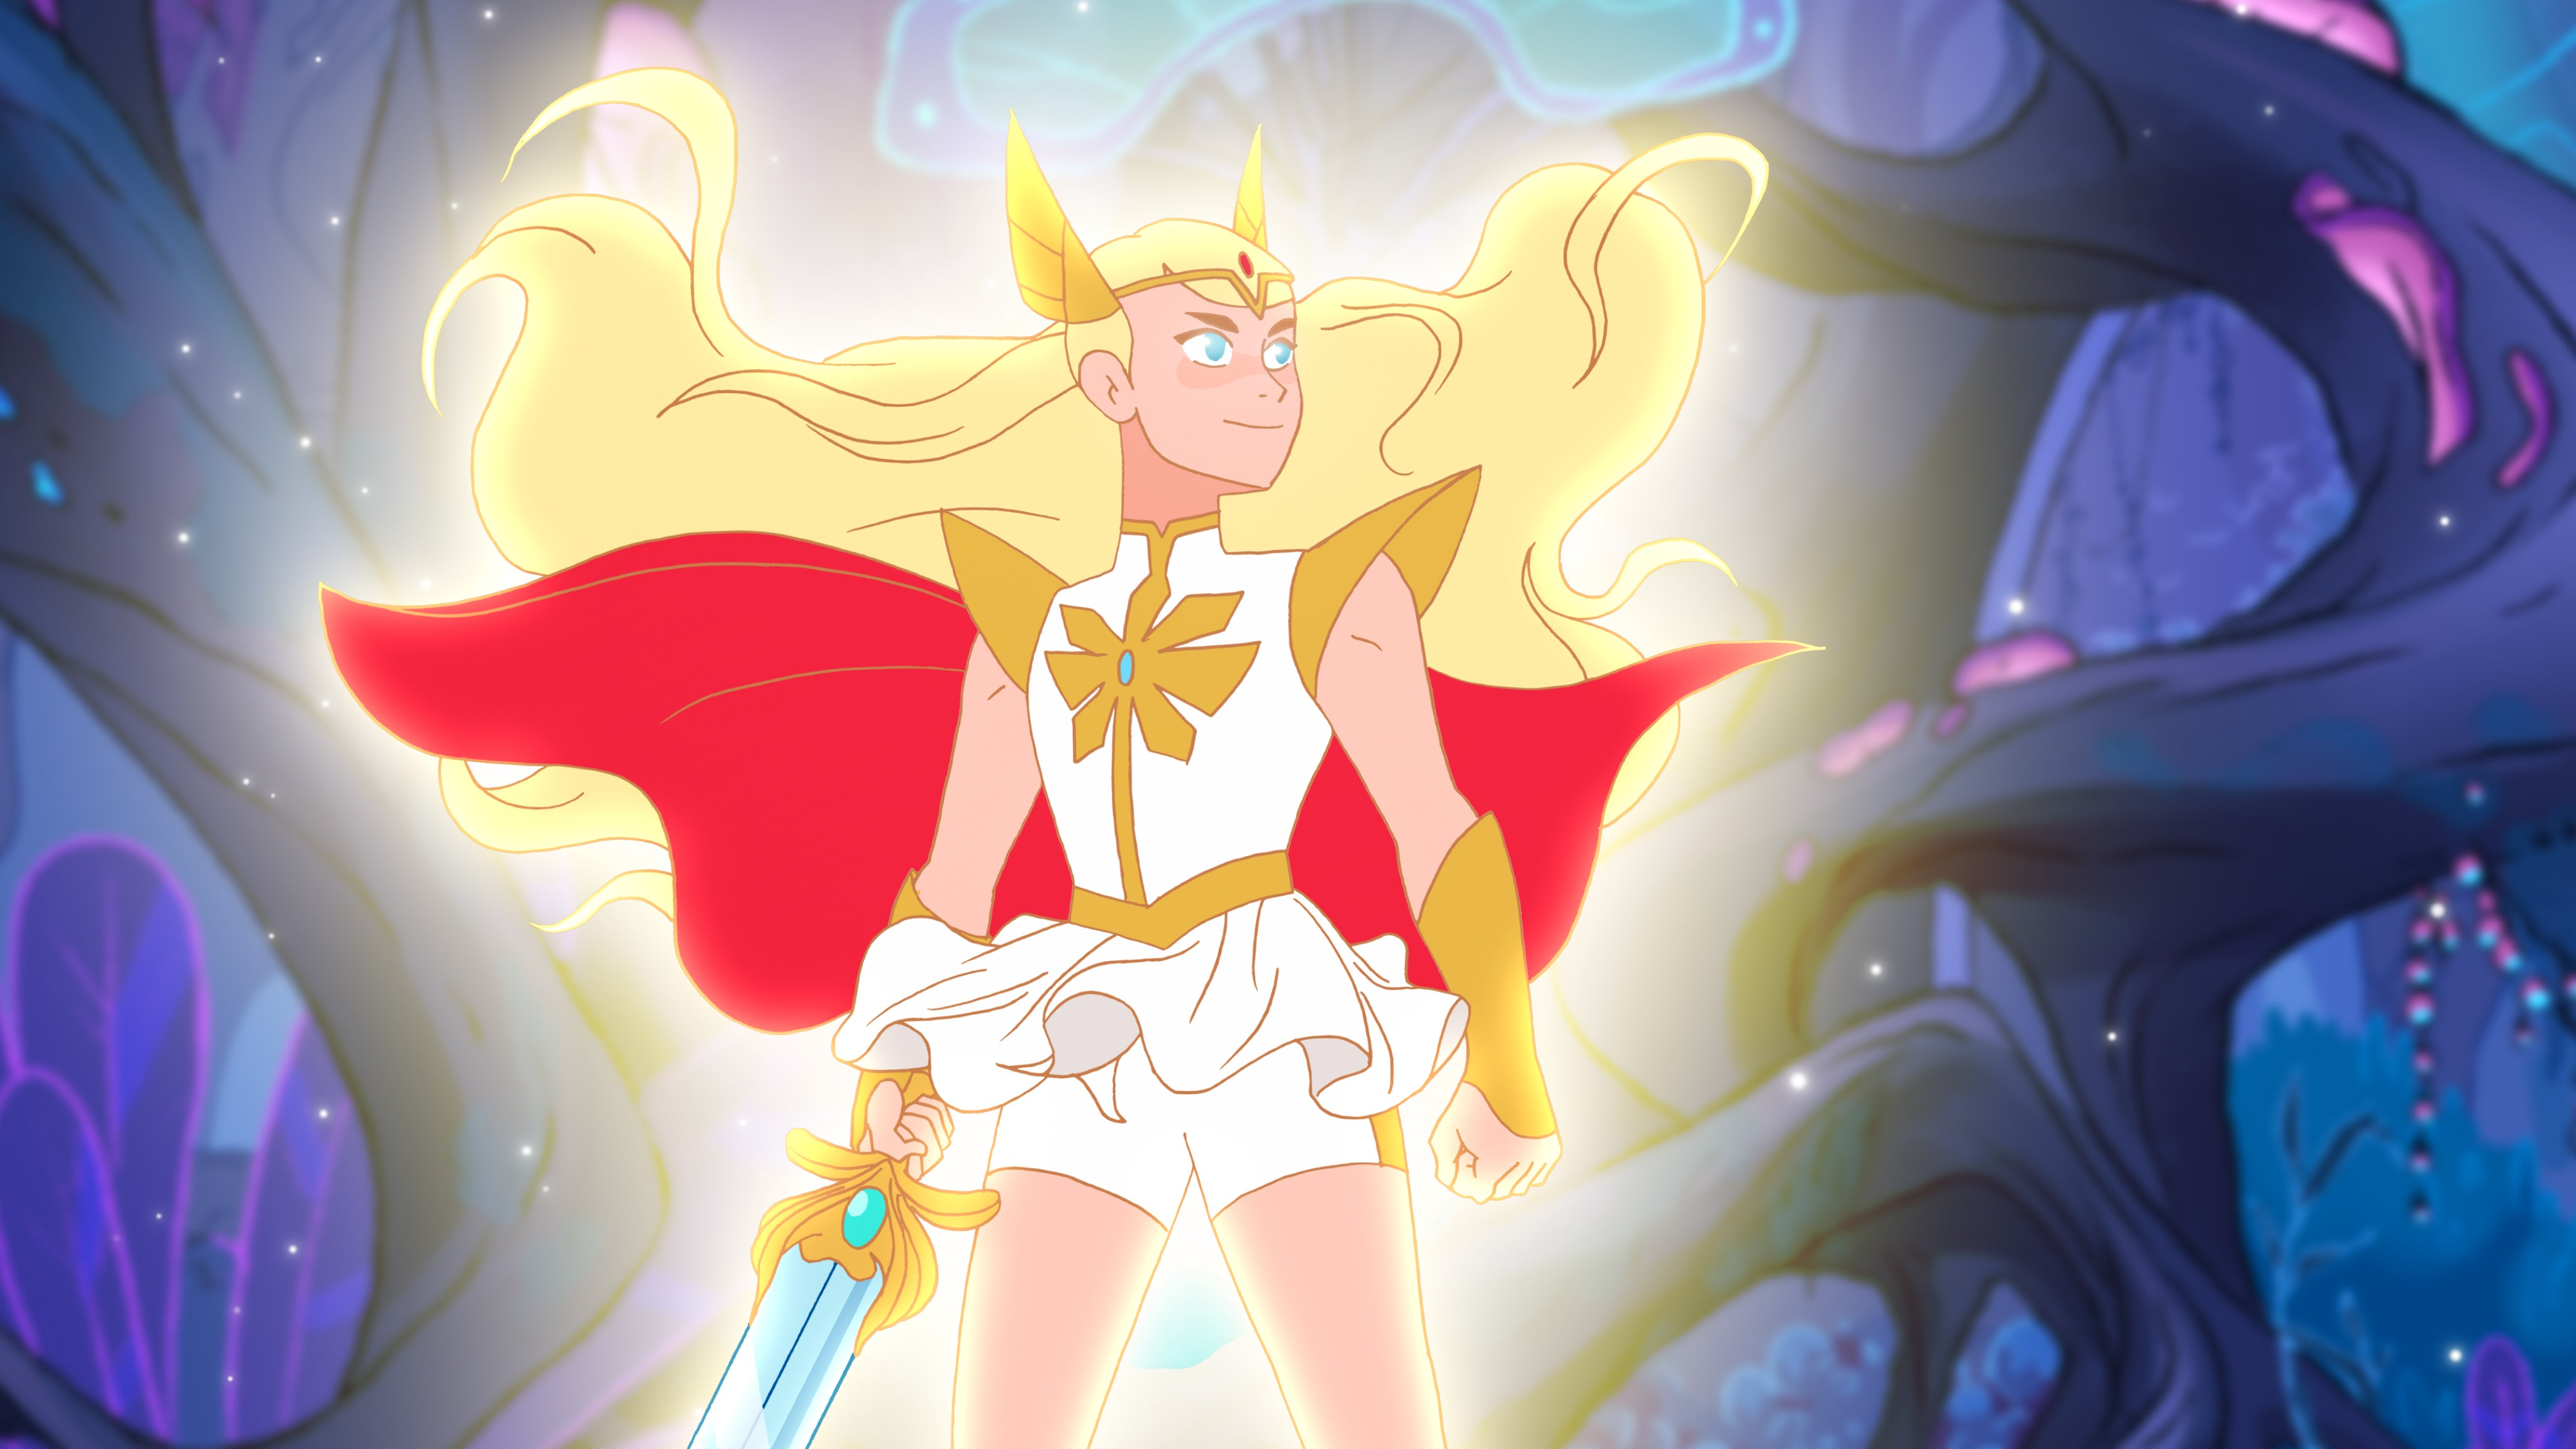 Here's How To Write Your Name The She-Ra Way